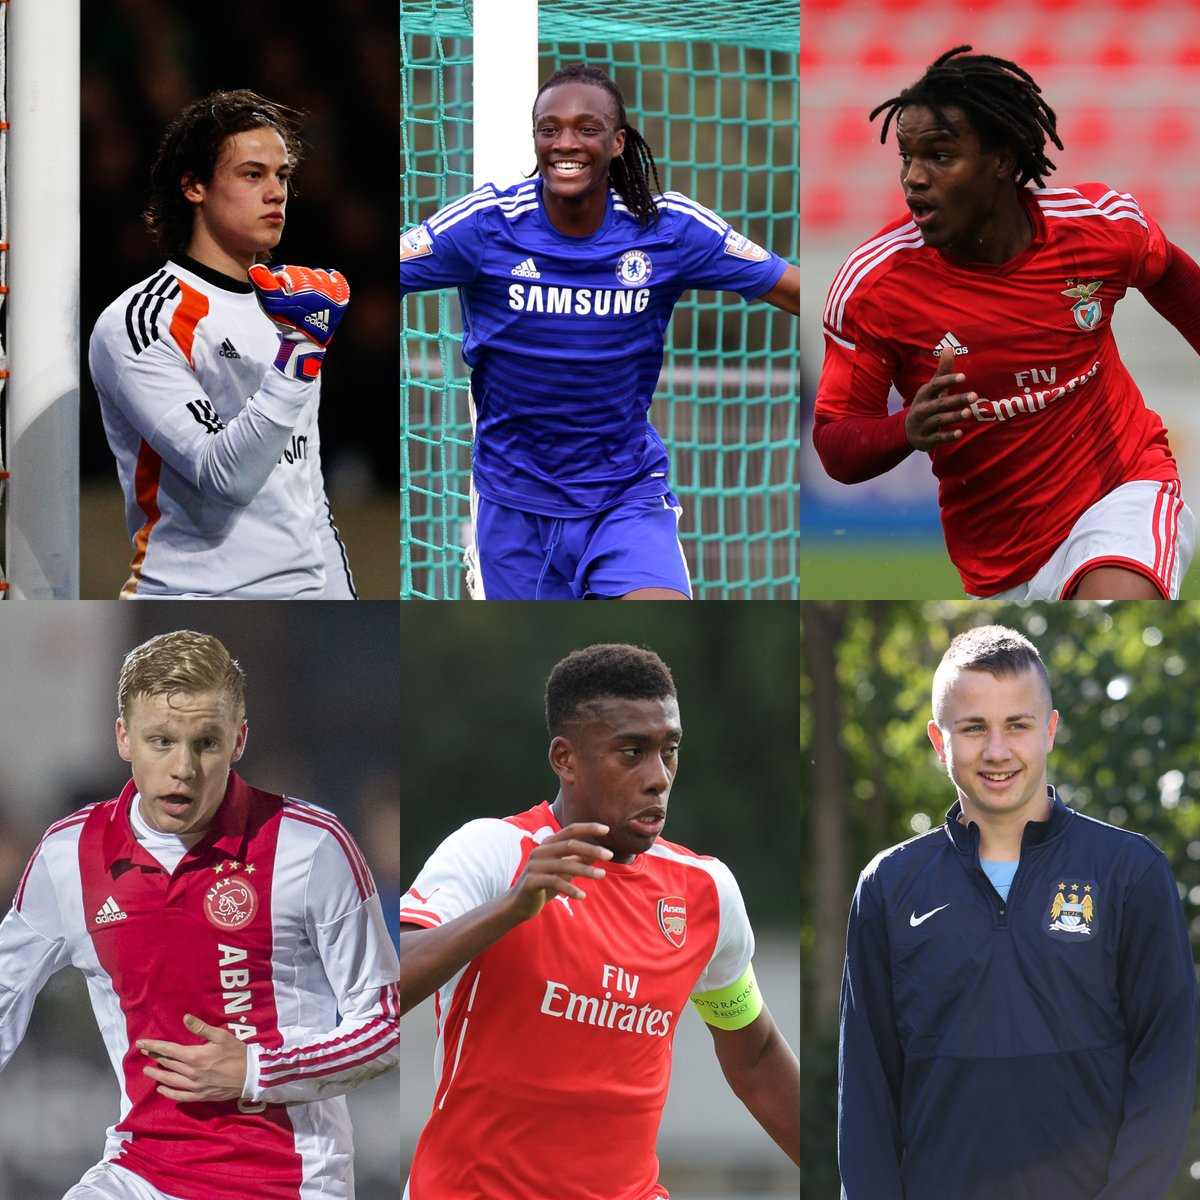 6⃣ future talents from the 2014/15 #UYL season🤩  How many can you name?🤔 https://t.co/3wE4zgWE0A